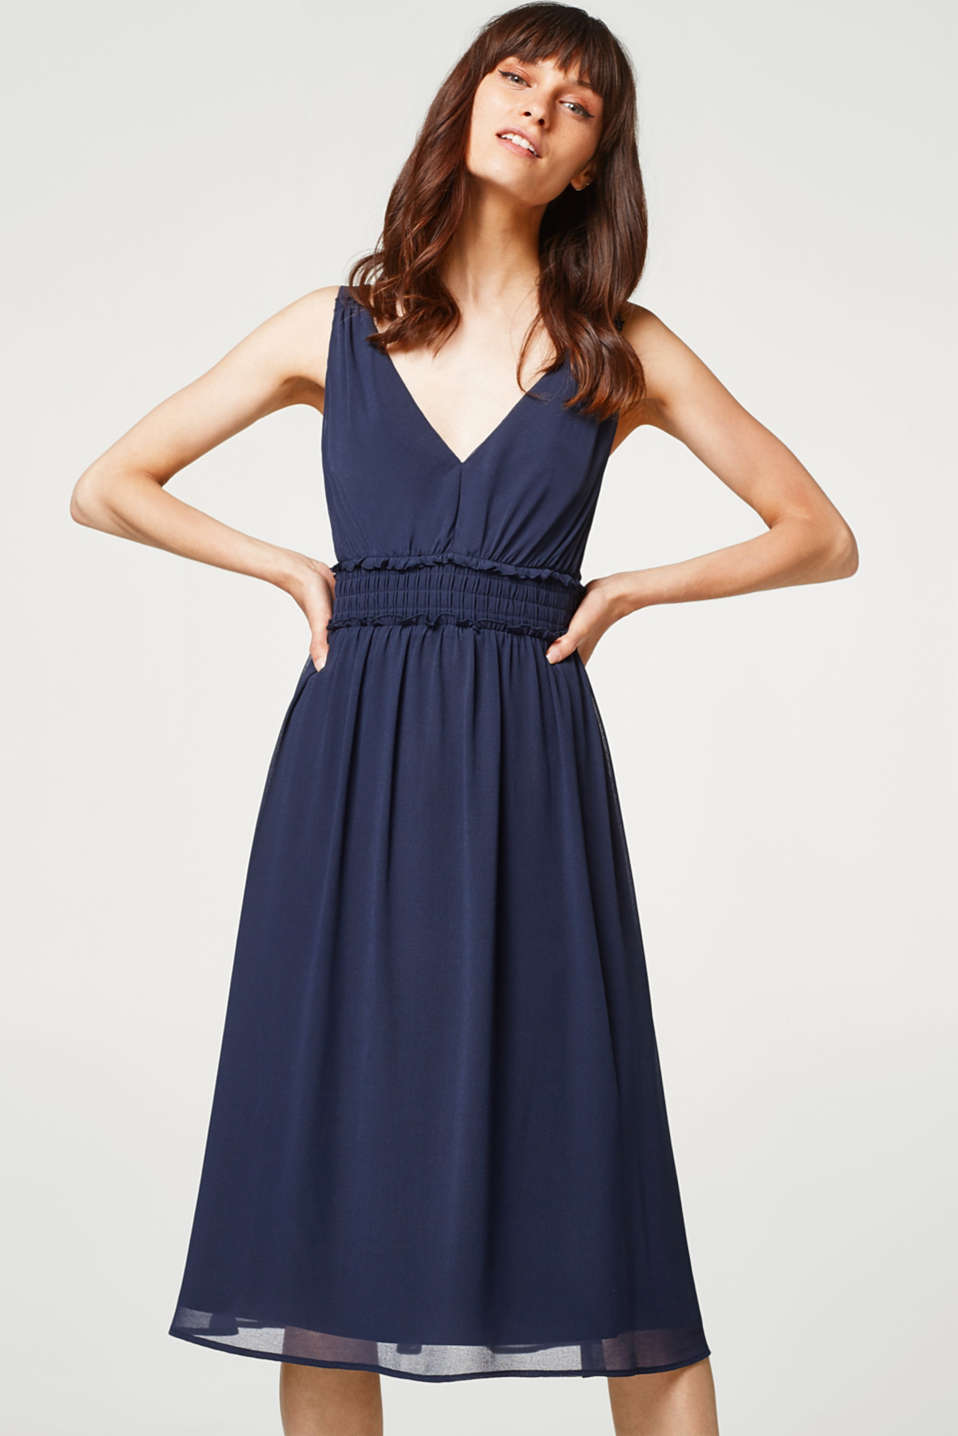 Esprit - Chiffon dress with V-neck